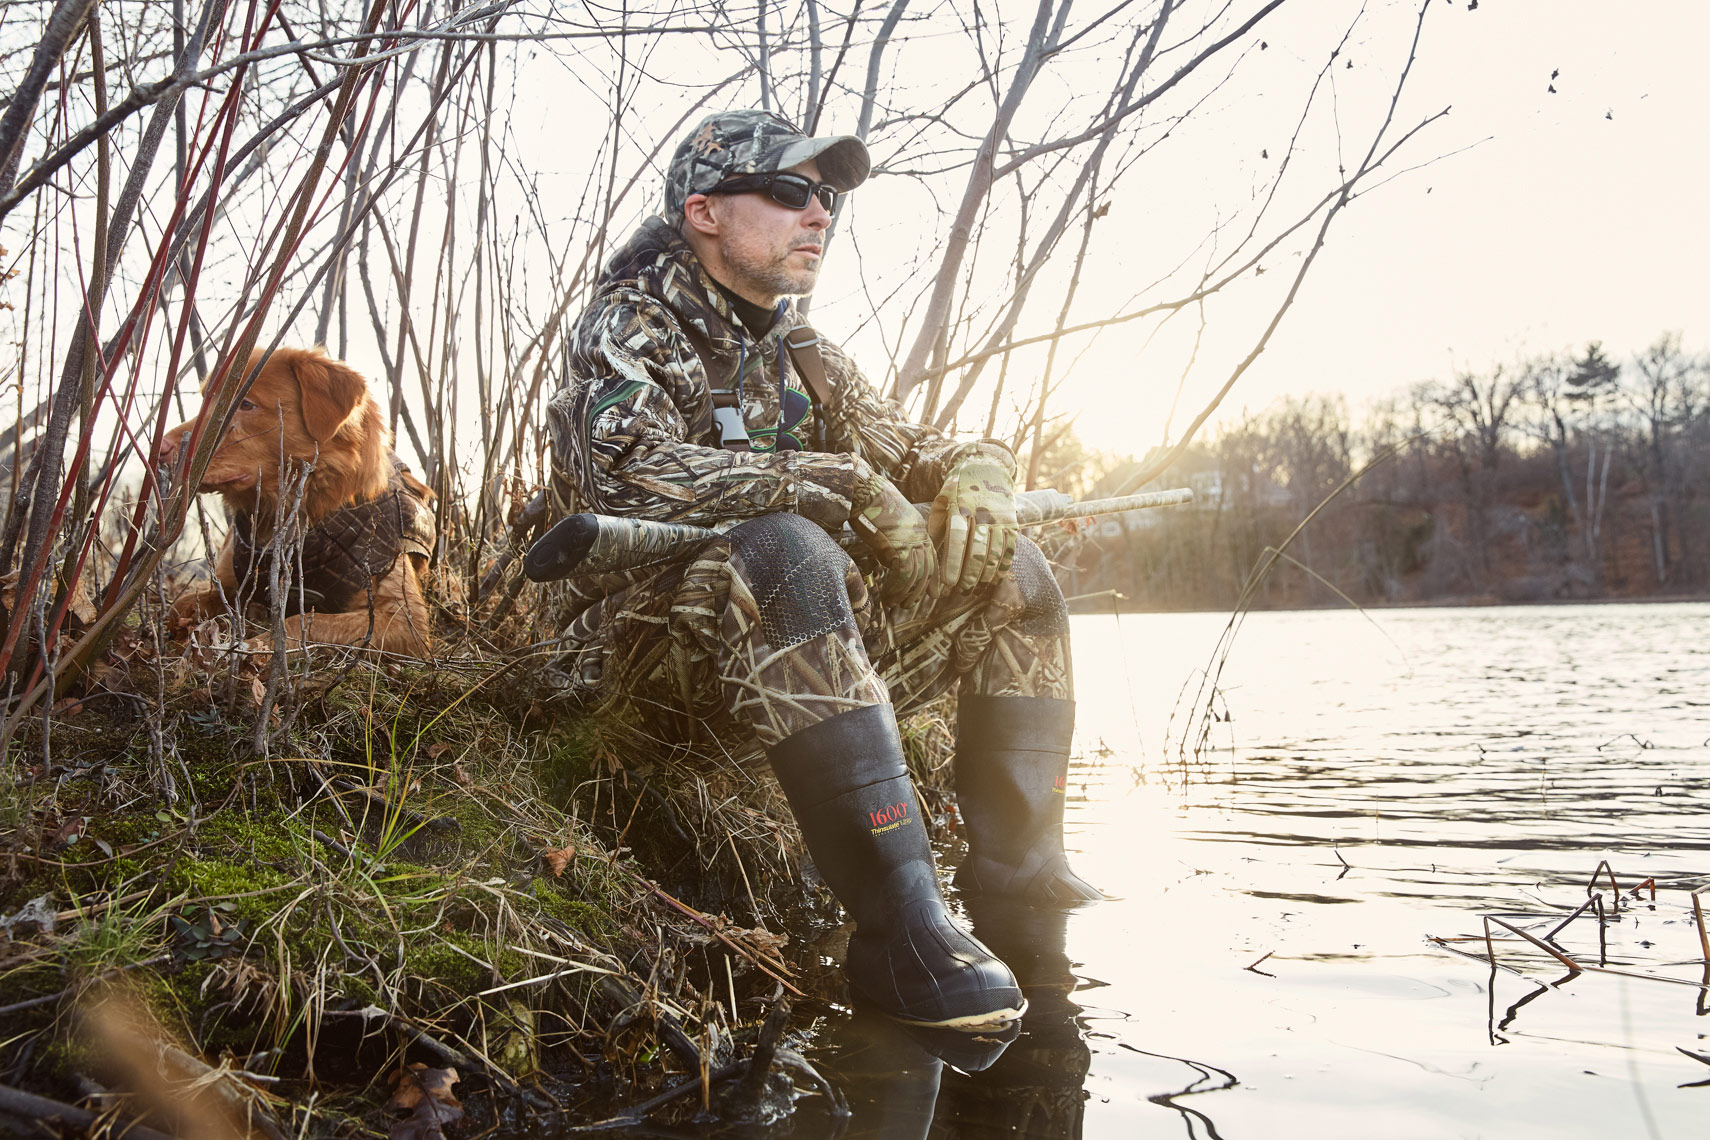 Fowl hunter in under armor camouflage with his hunting dog